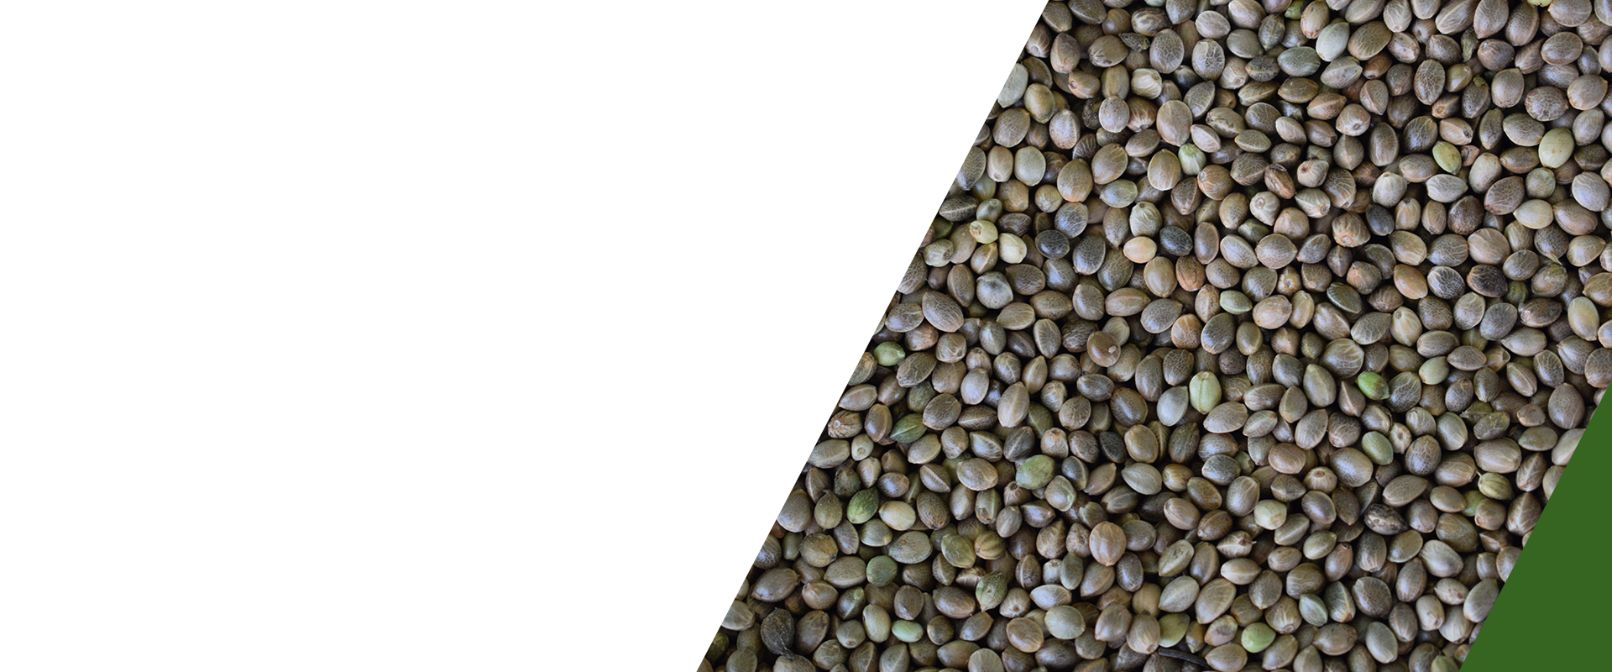 Un-Hulled Hemp Seeds